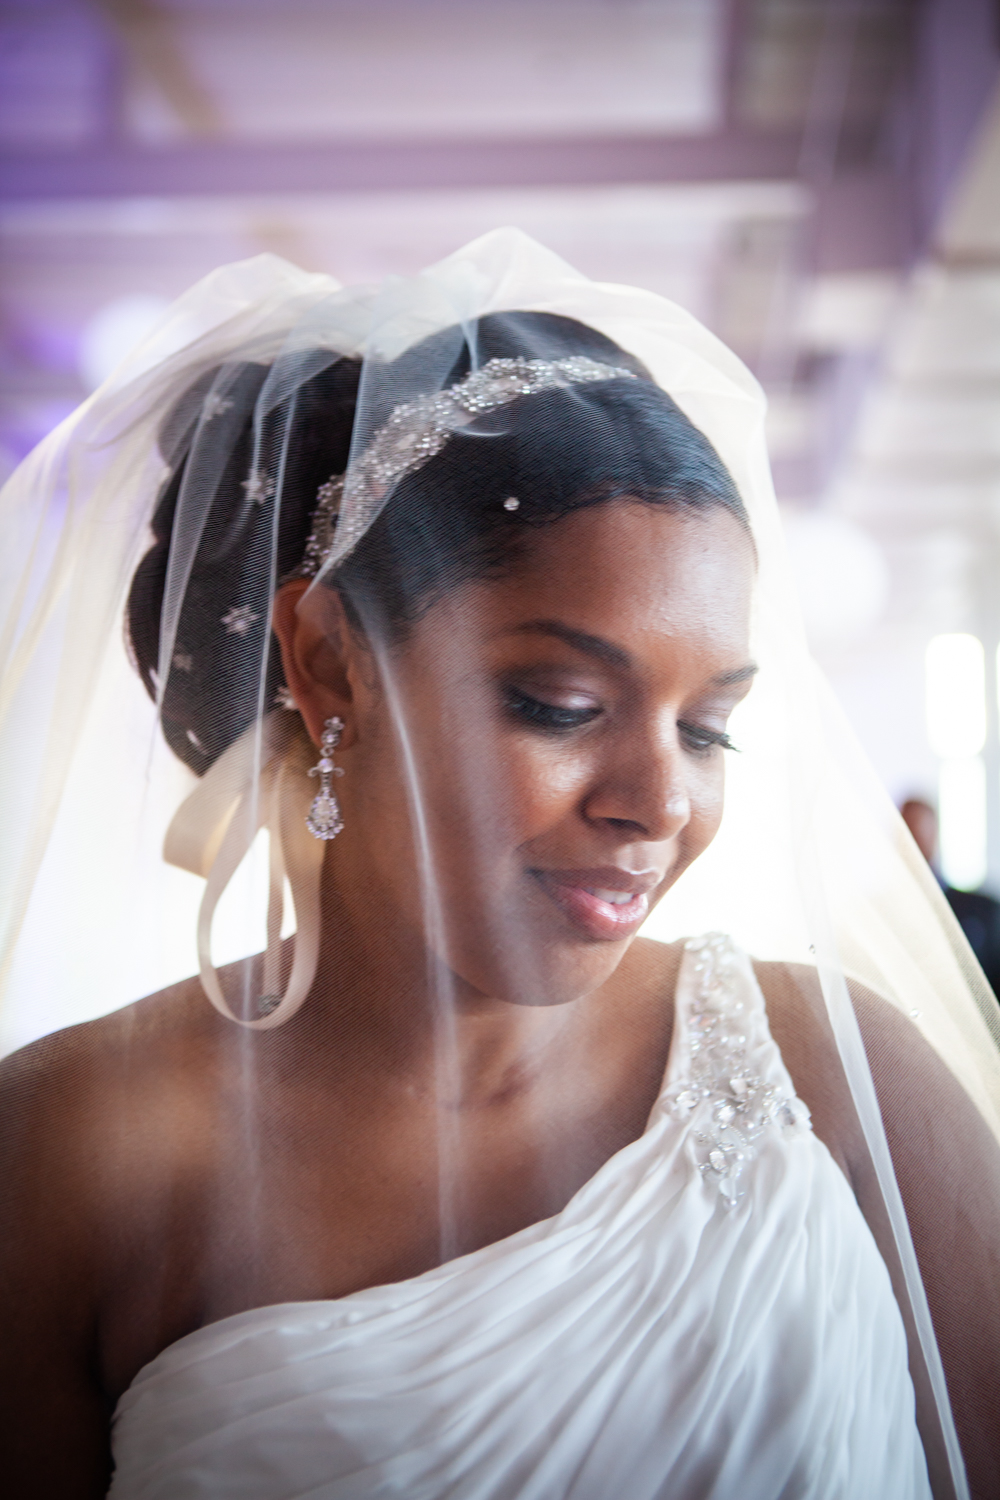 Portrait of bride wearing veil at an Attic Studios wedding